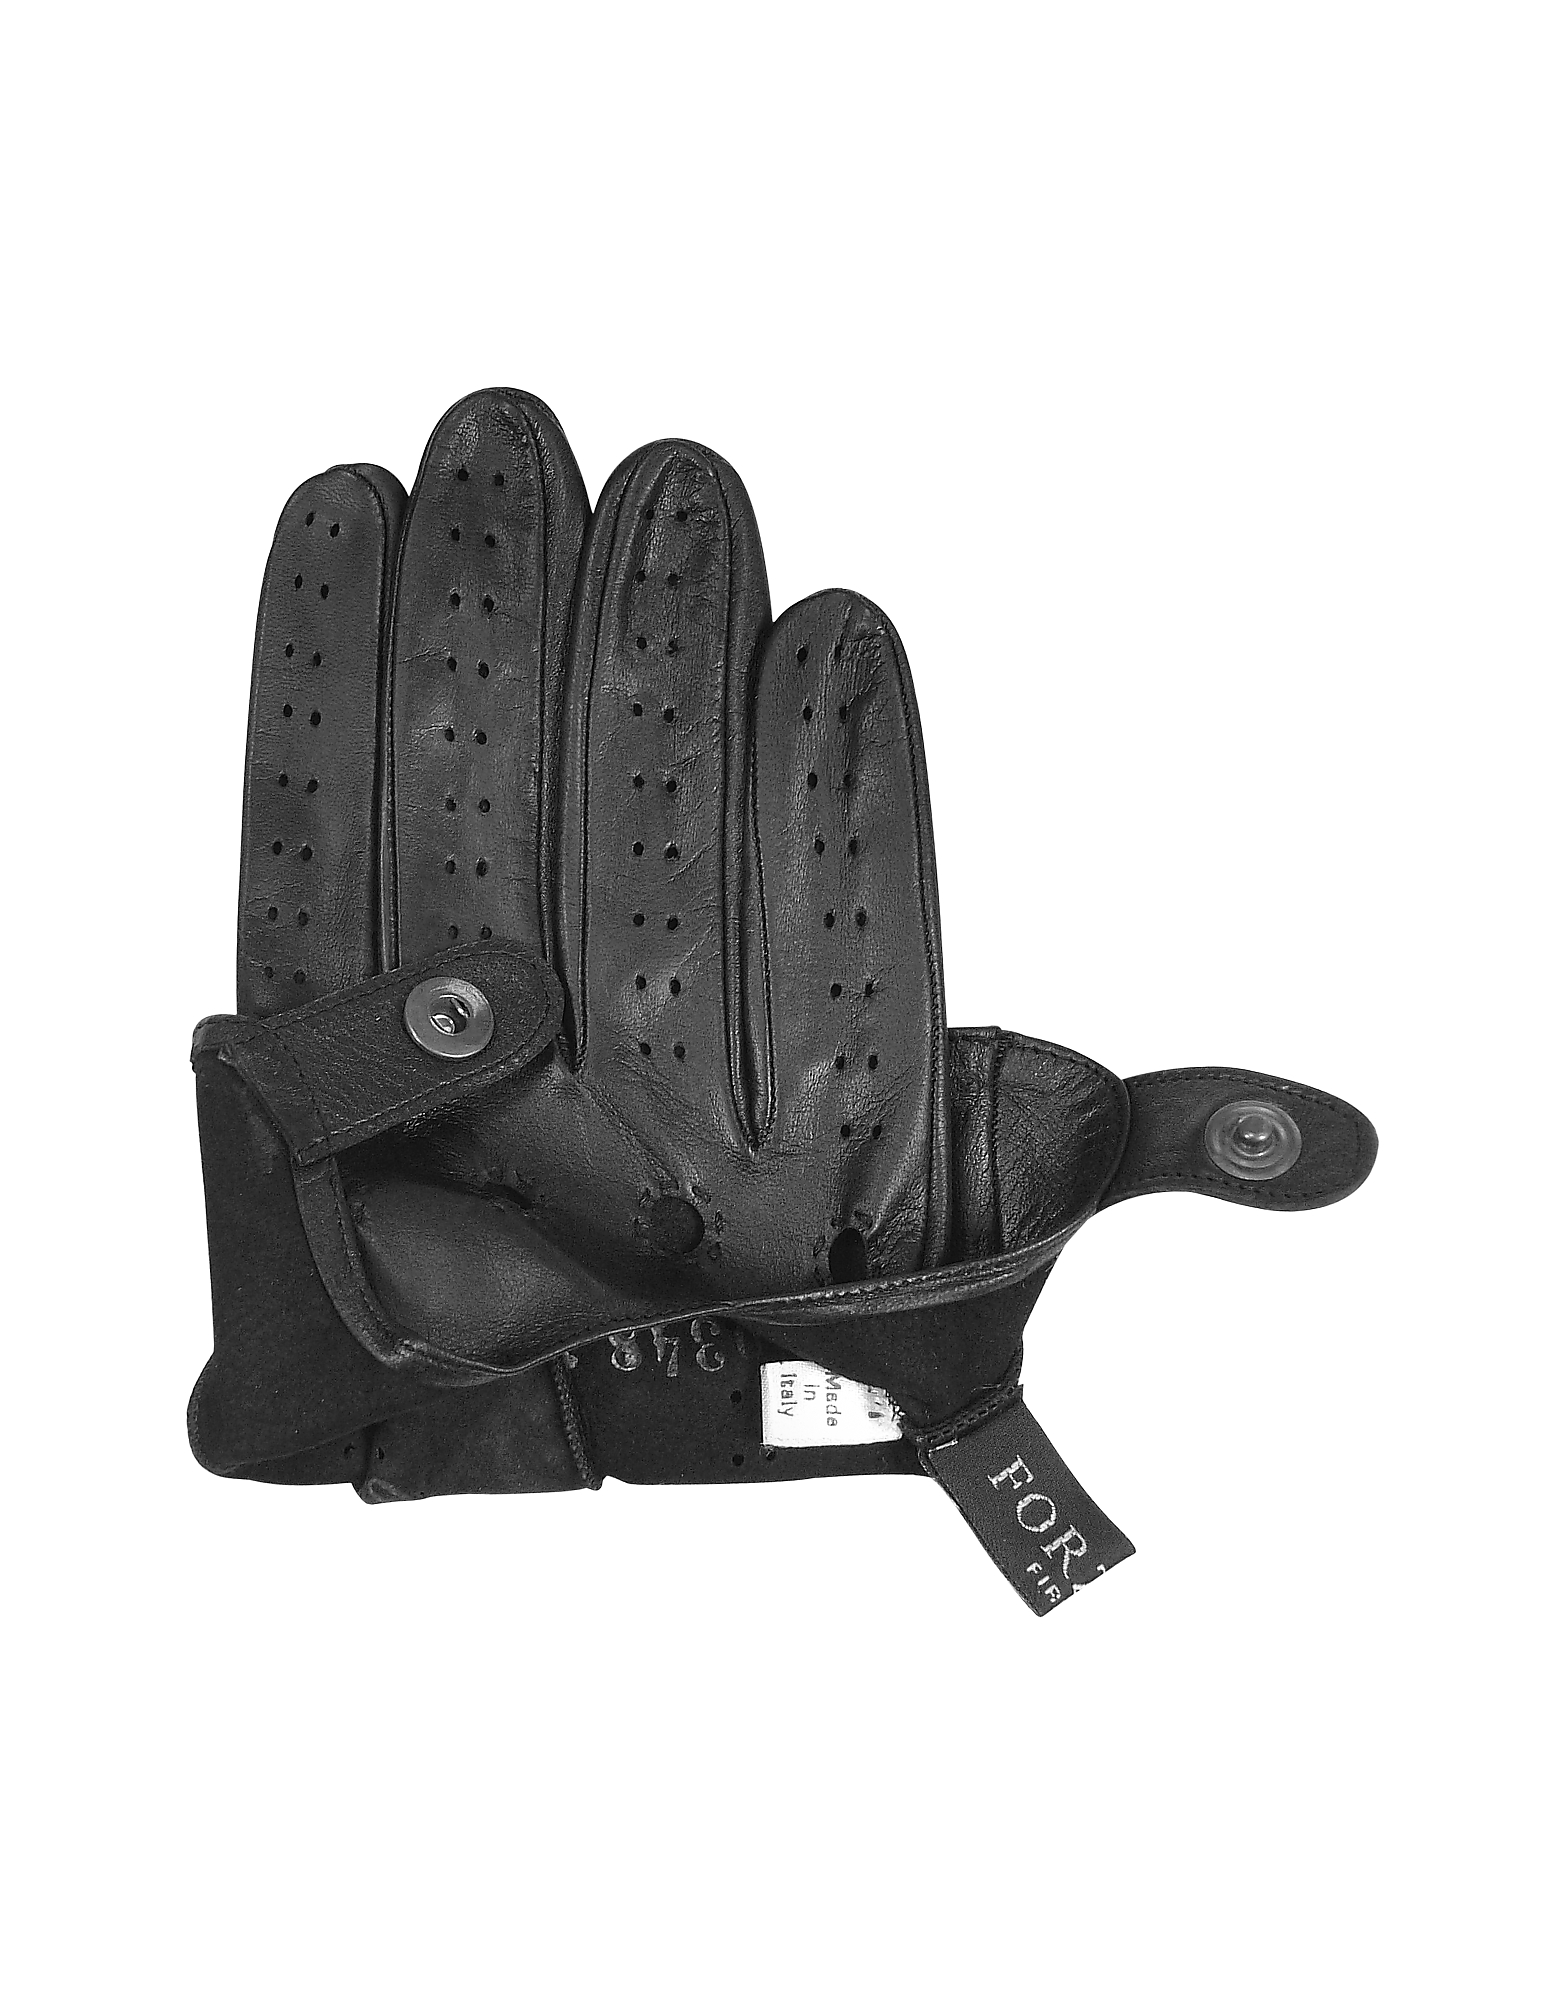 Men's Black Italian Leather Driving Gloves от Forzieri.com INT